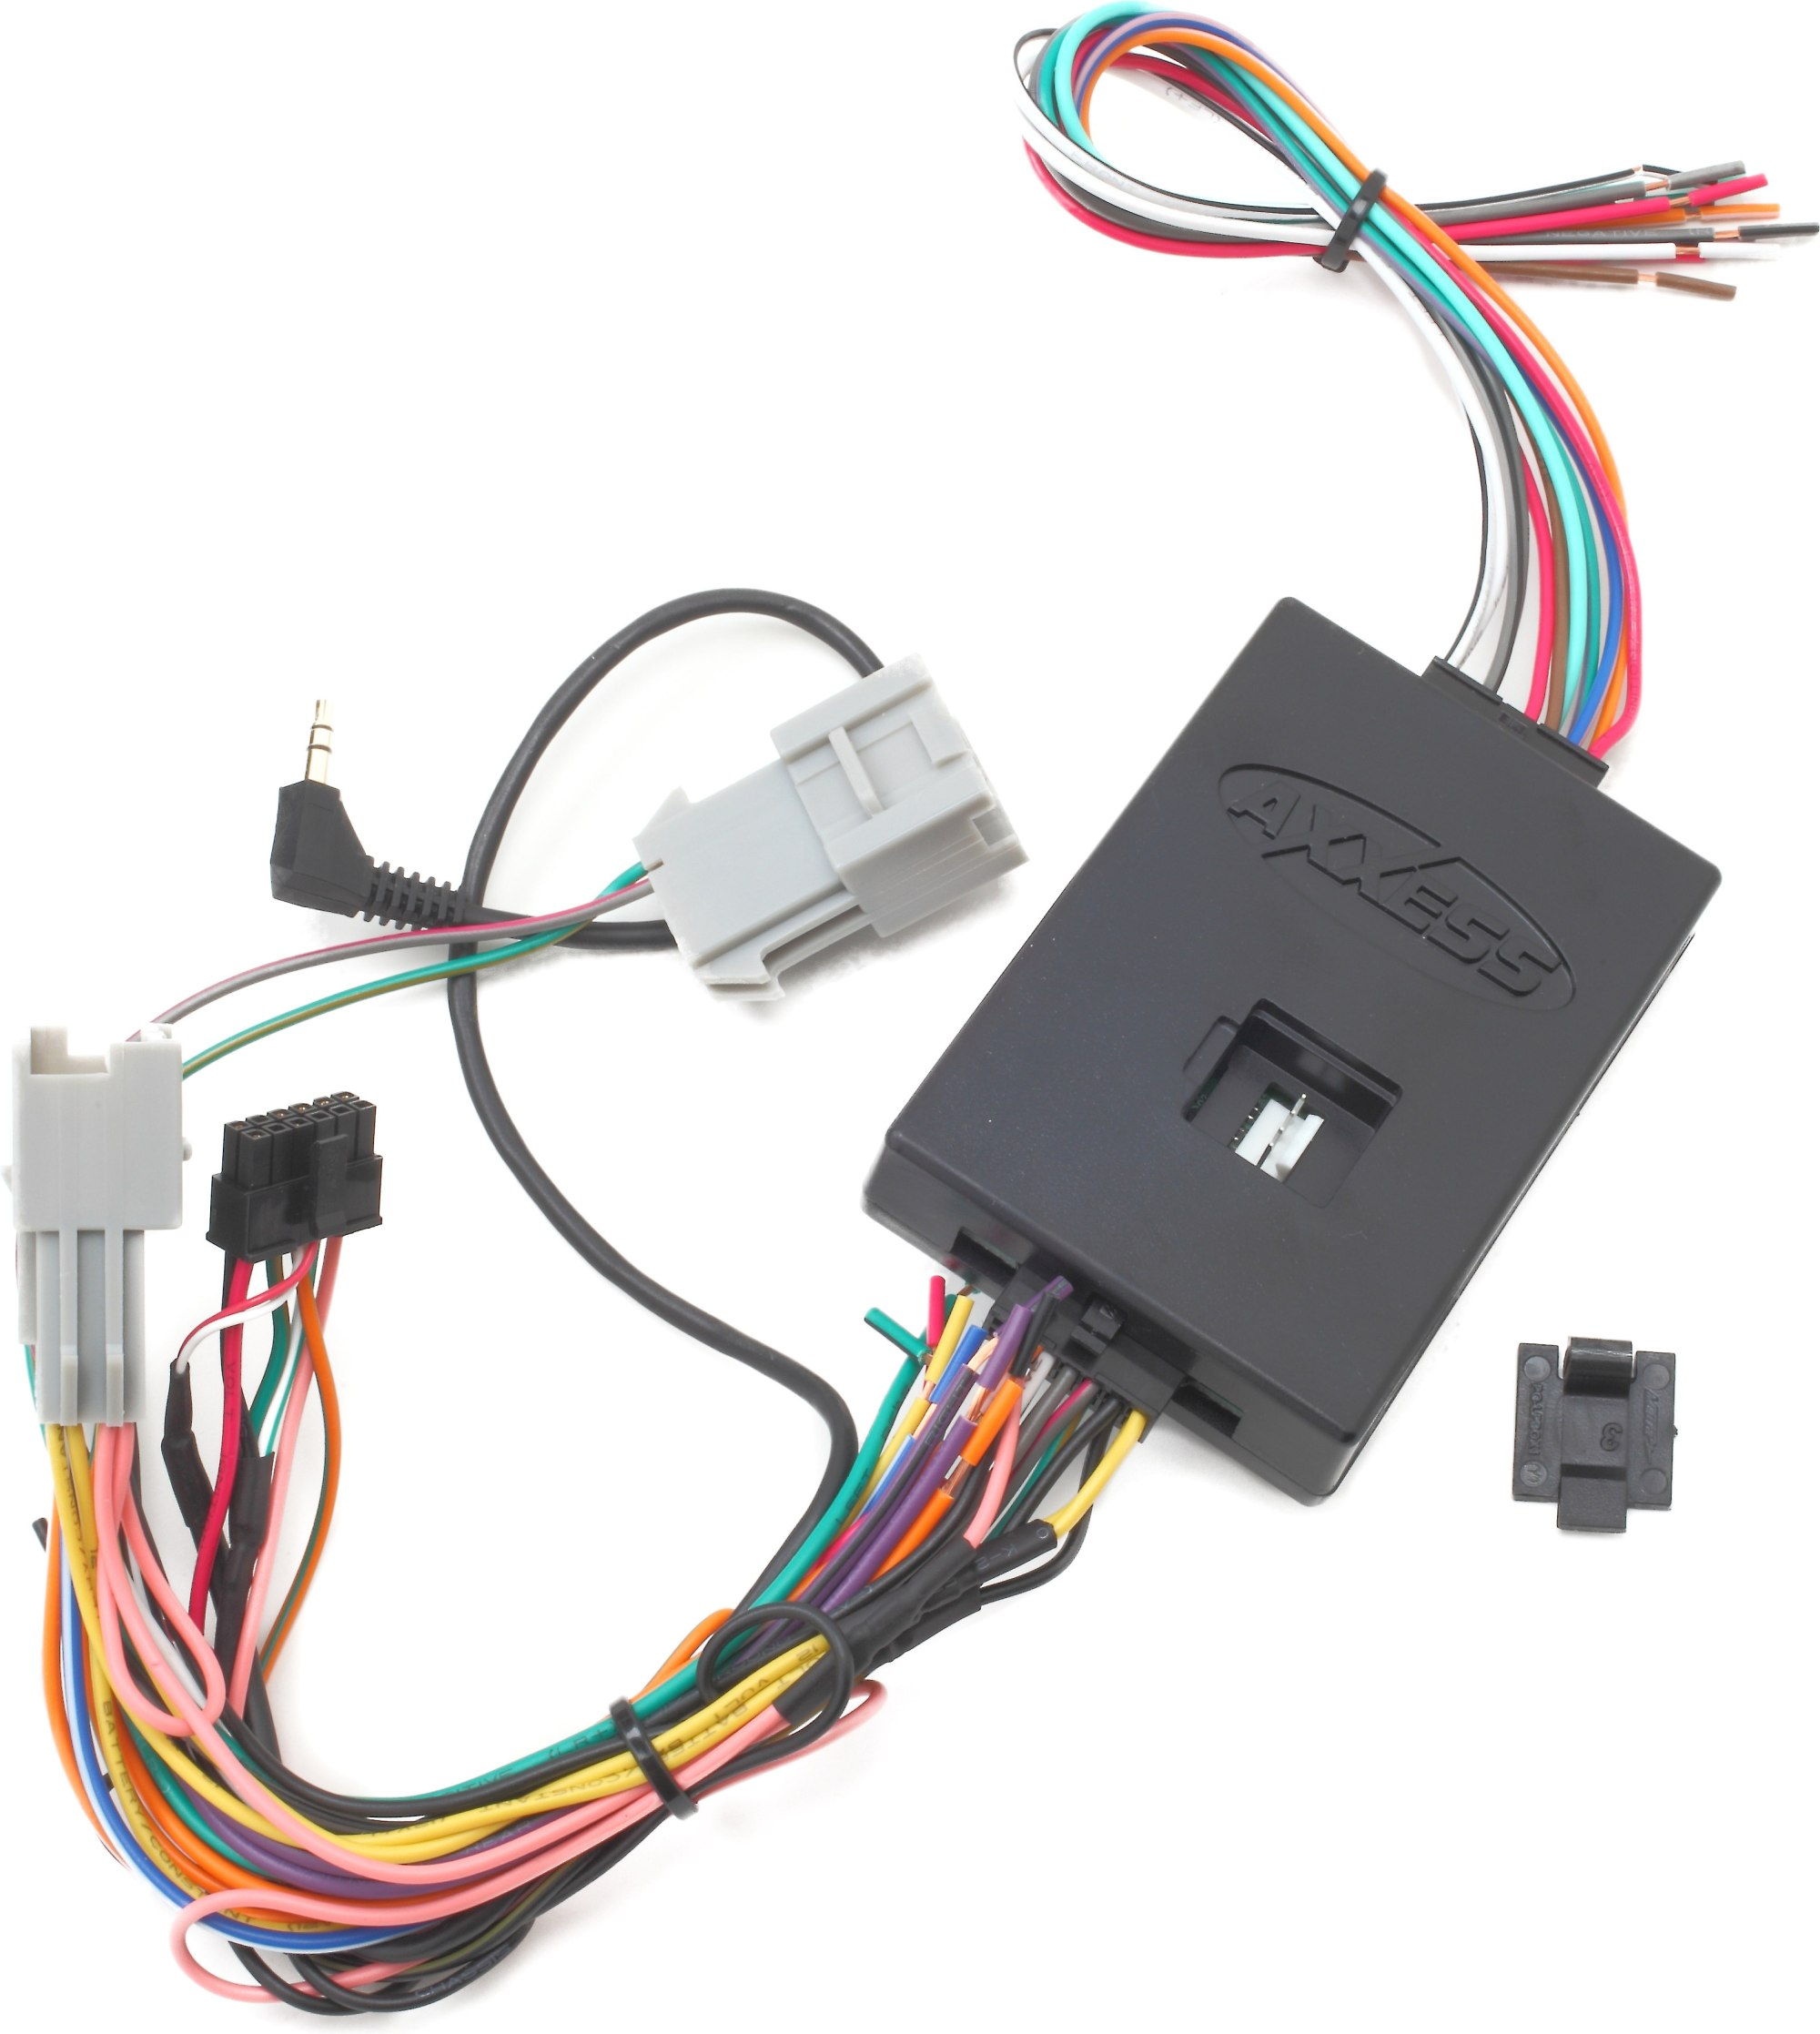 hight resolution of metra gmos 01 wiring interface connect a new car stereo and retain onstar factory door chimes and audible safety warnings in select gm vehicles at